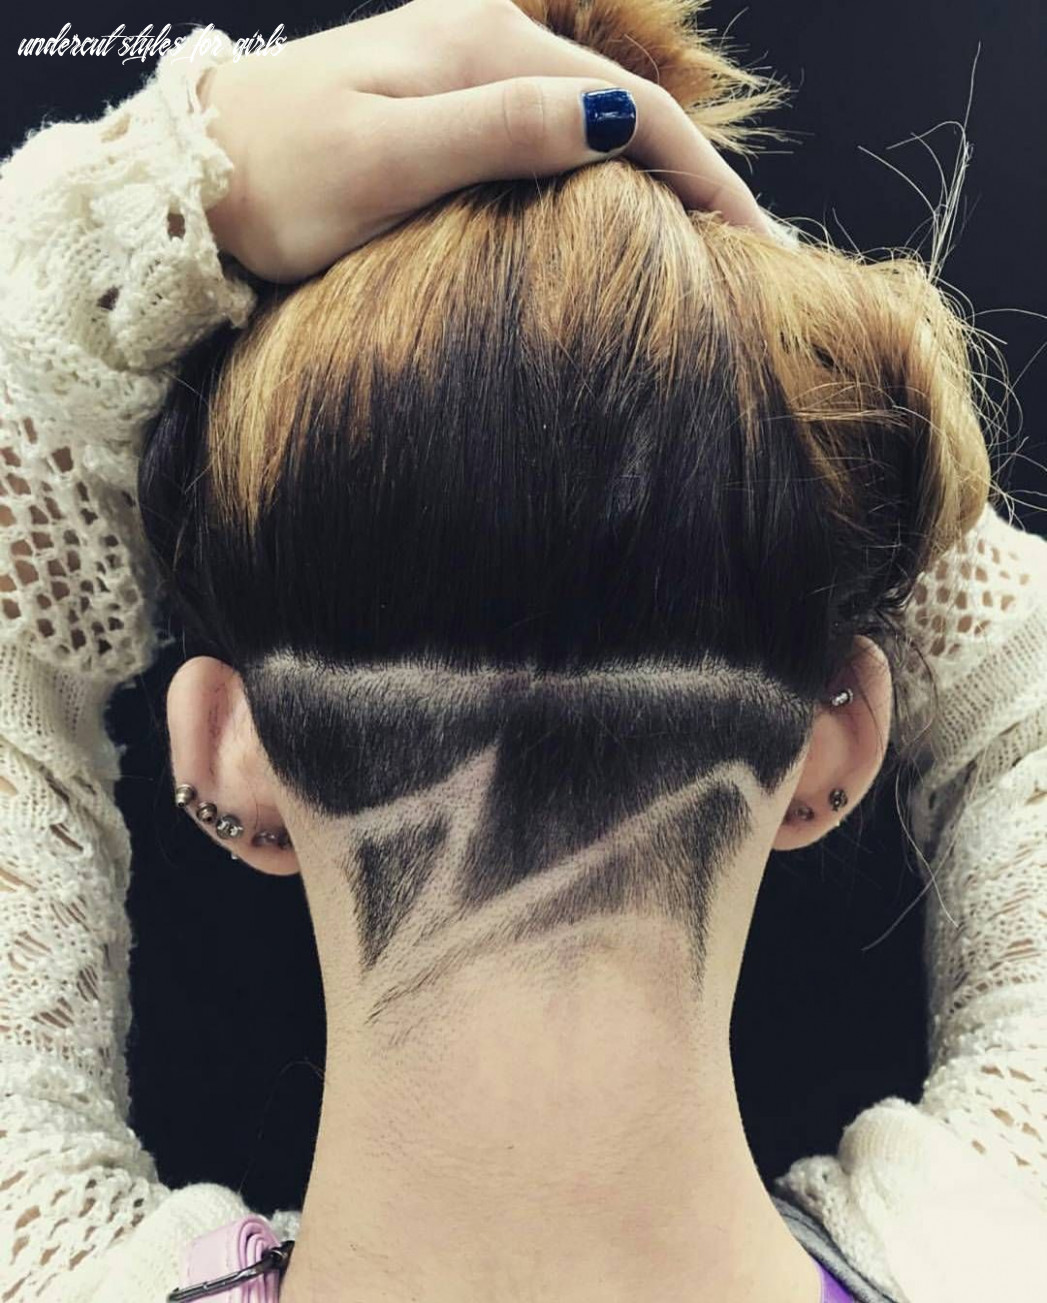 Cool undercut wave pattern for women | undercut hairstyles, shaved